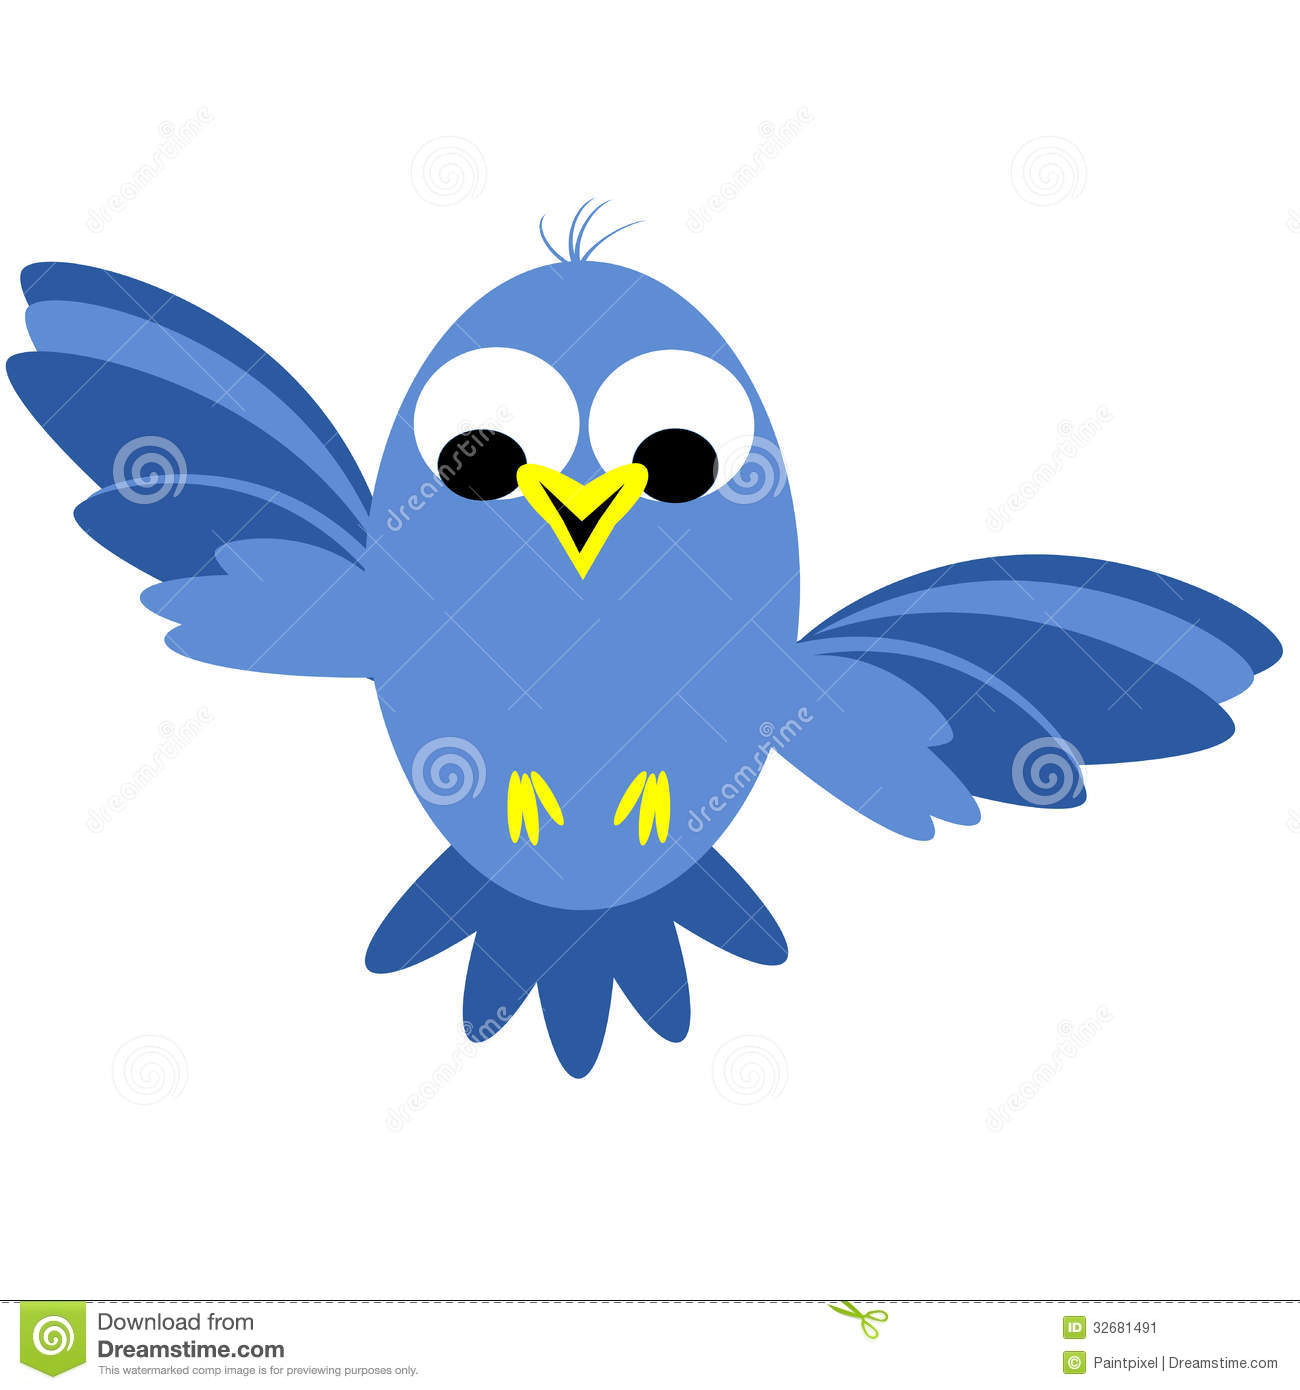 Bluebird clipart early bird Birds flying Yellow Flying Clipart